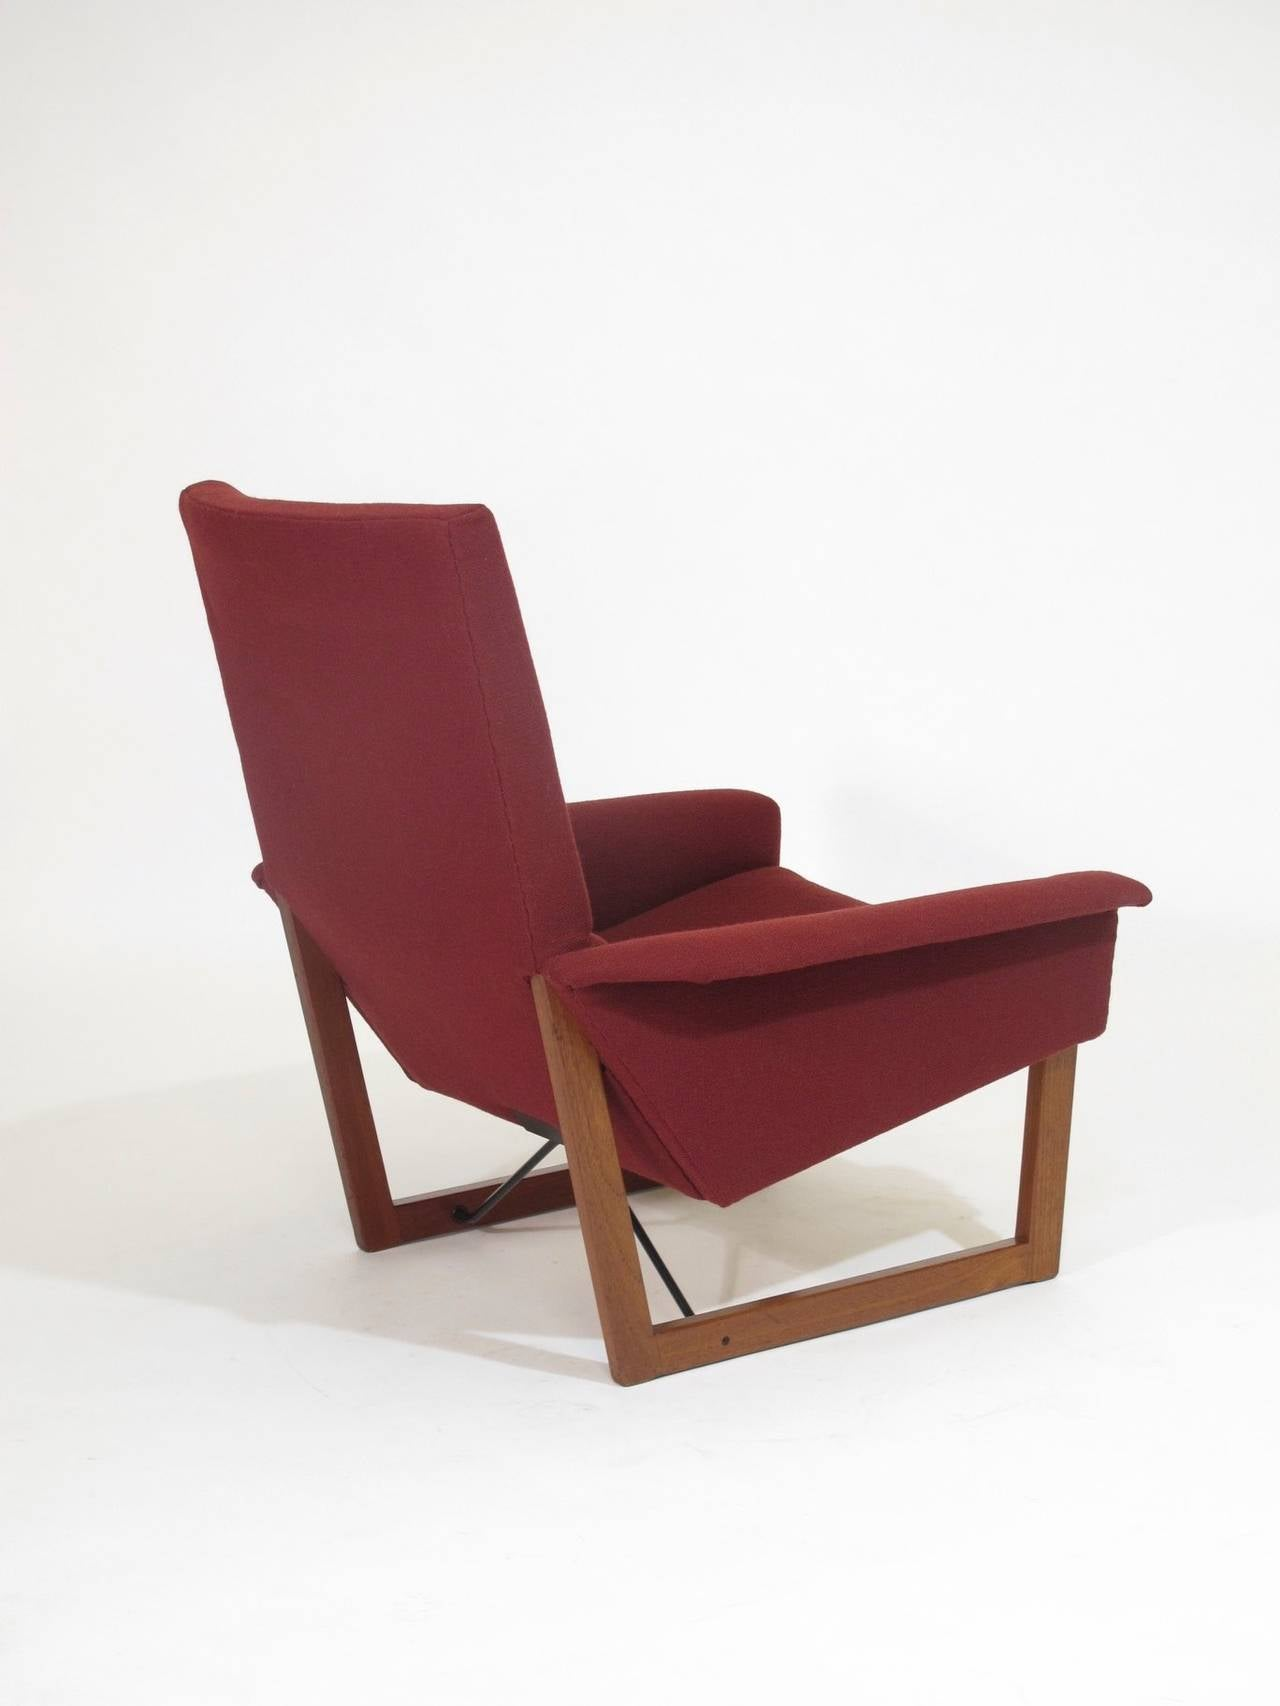 Illum Wikkelso Danish Lounge Chair at 1stdibs